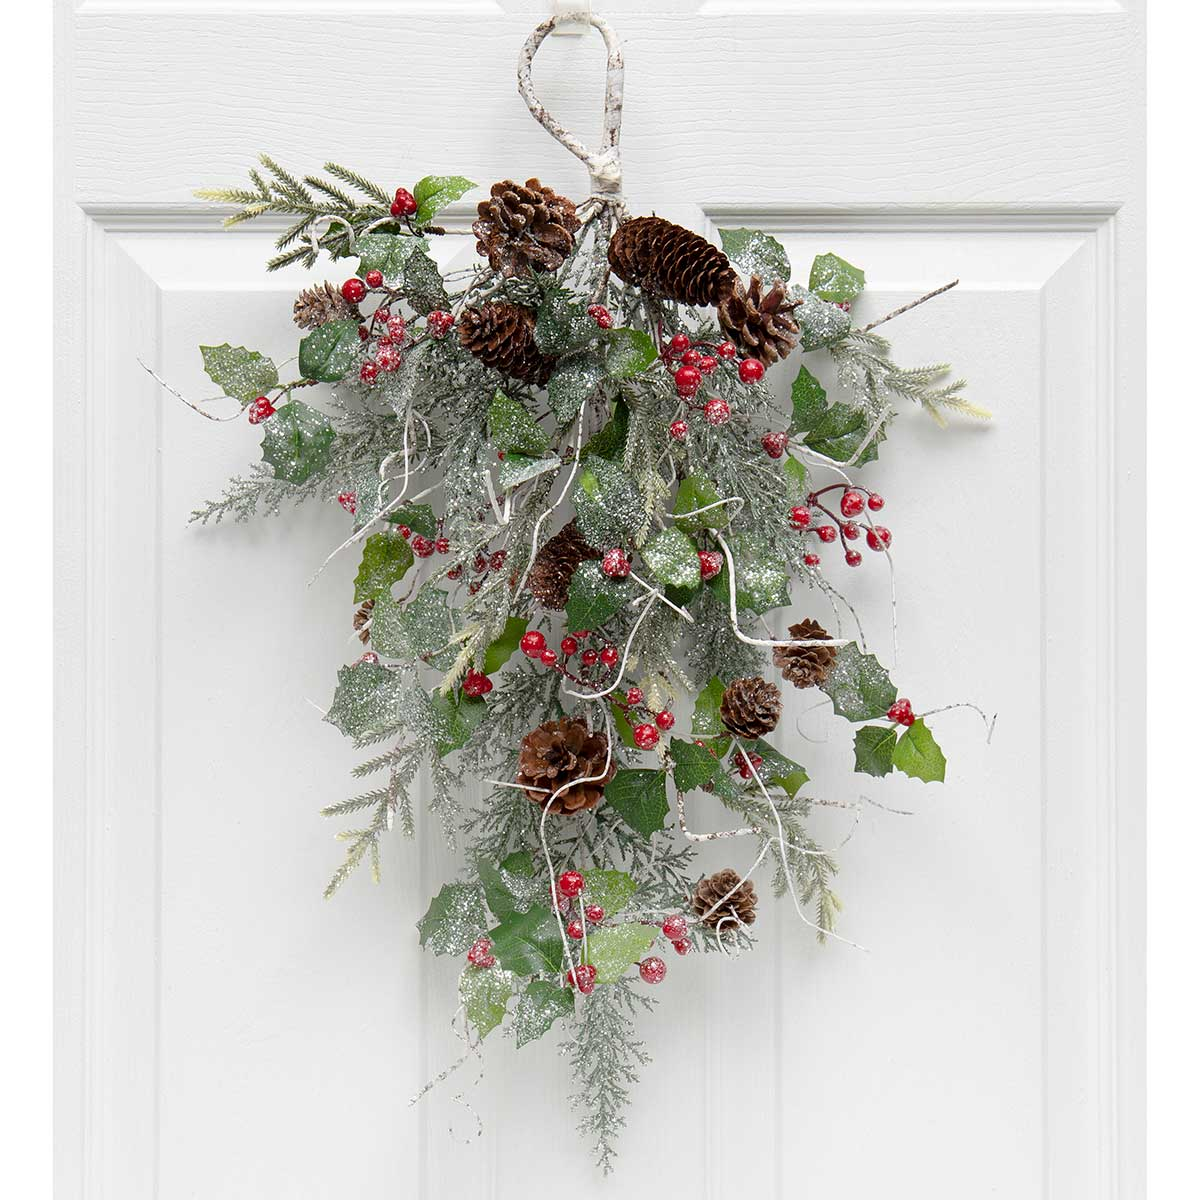 BIRCH & PINE BOUGH WITH HOLLY,